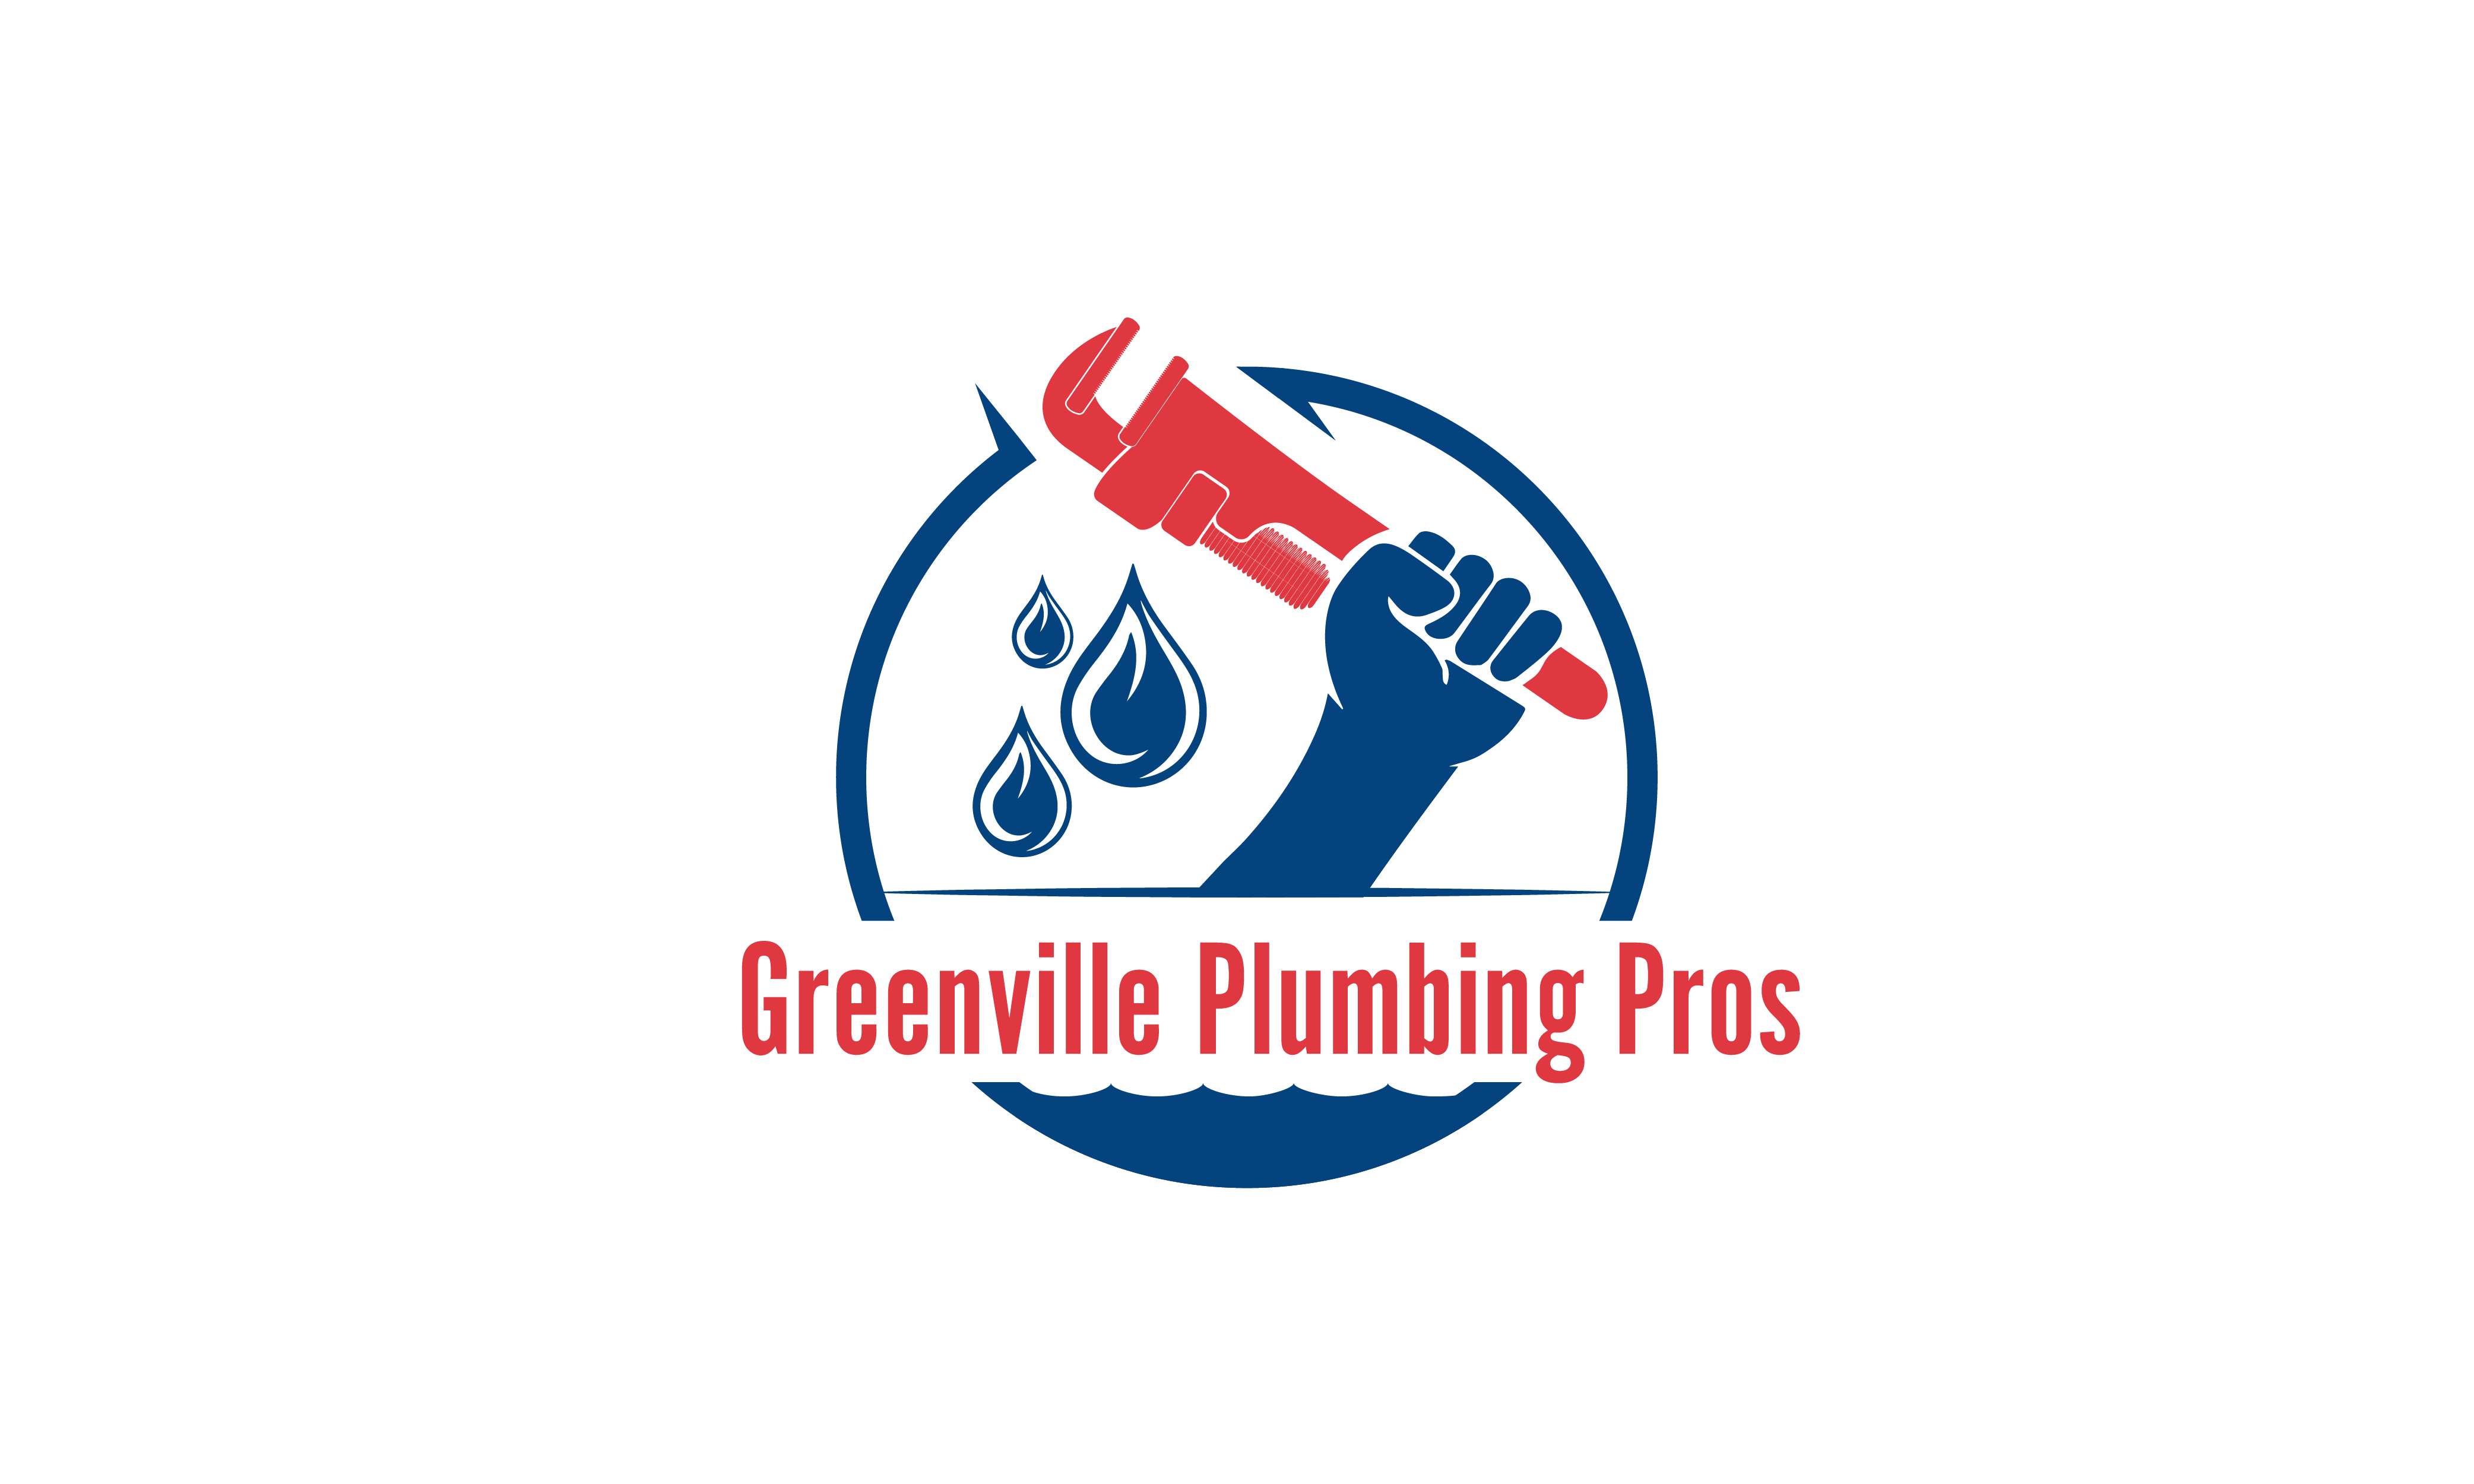 Greenville Plumbing Pros Greenville Launches Greenville Plumbing Service